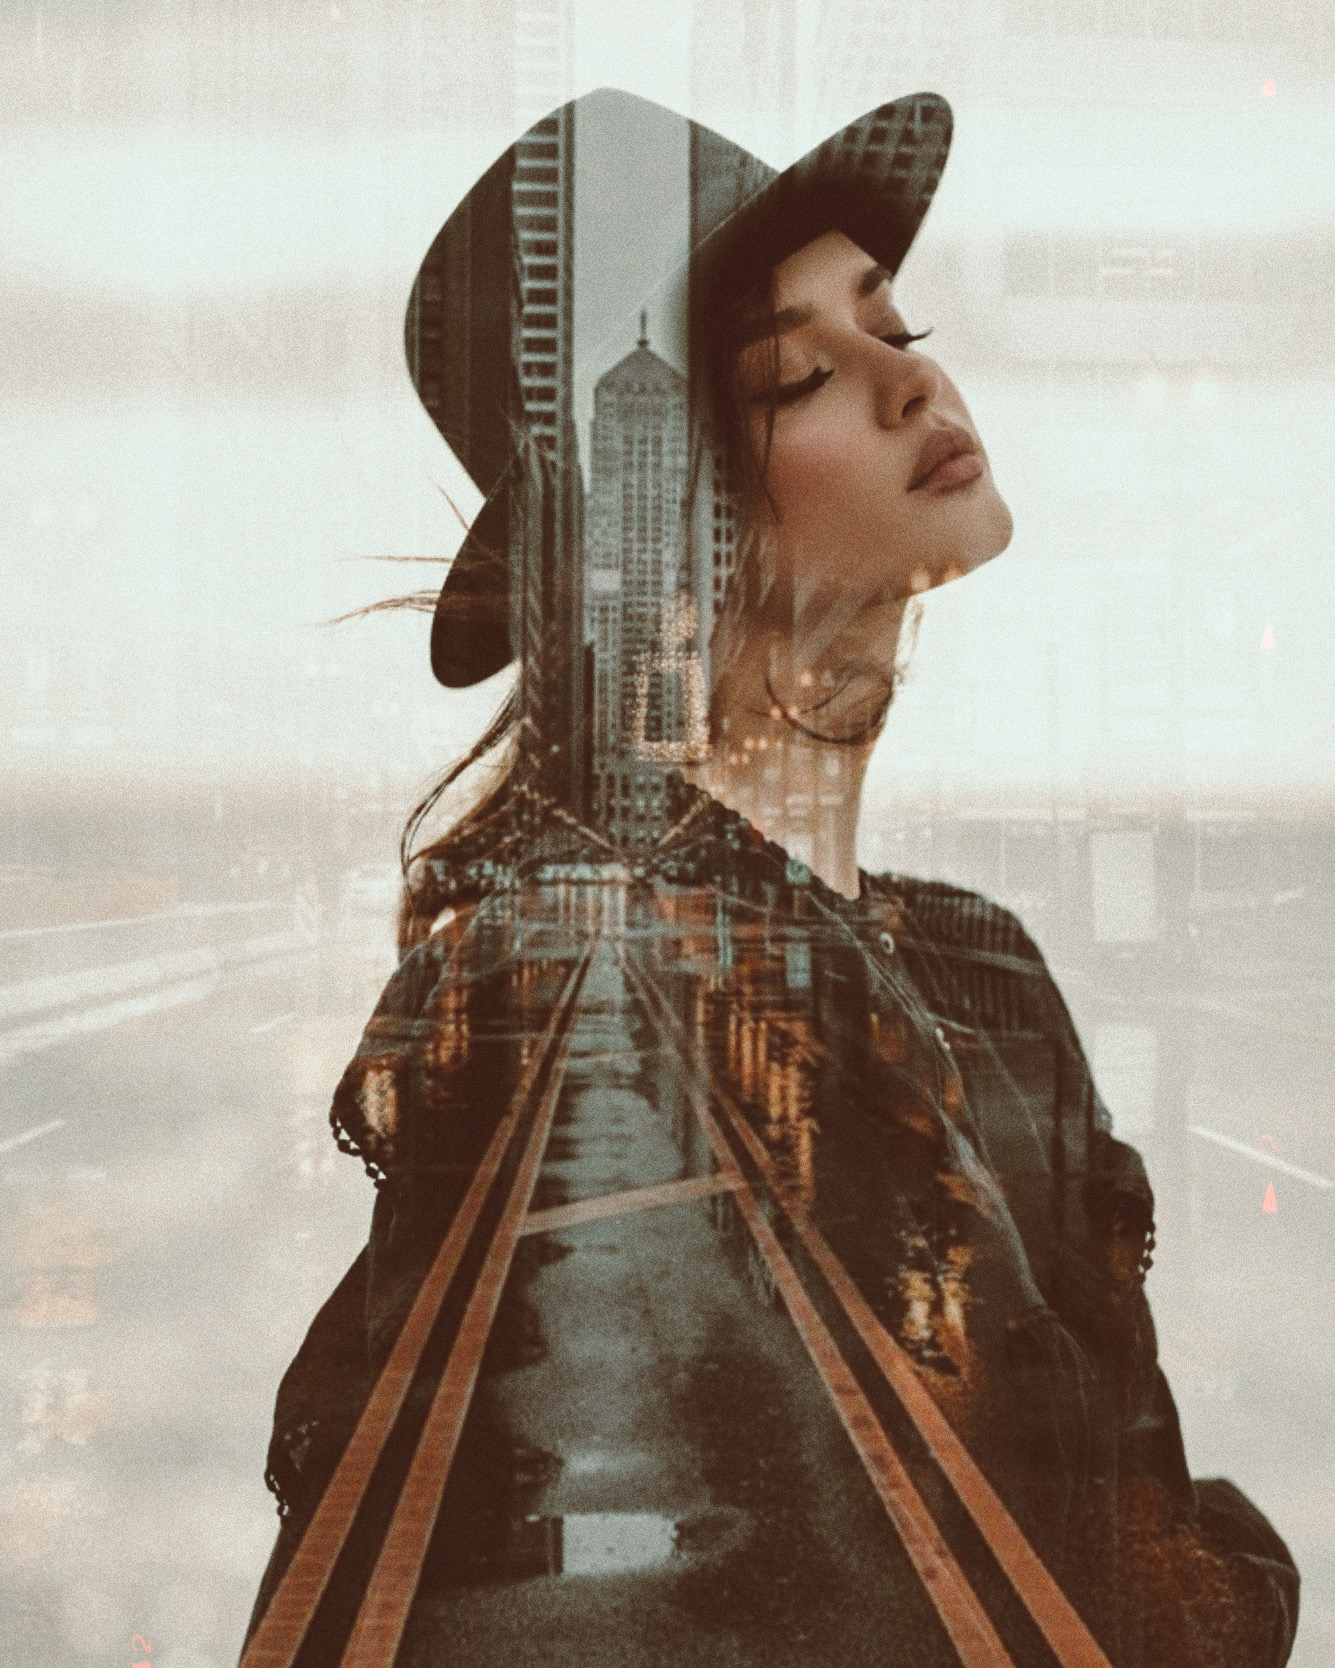 #doubleexposure #doubleexposures #doubleexposureedit #road